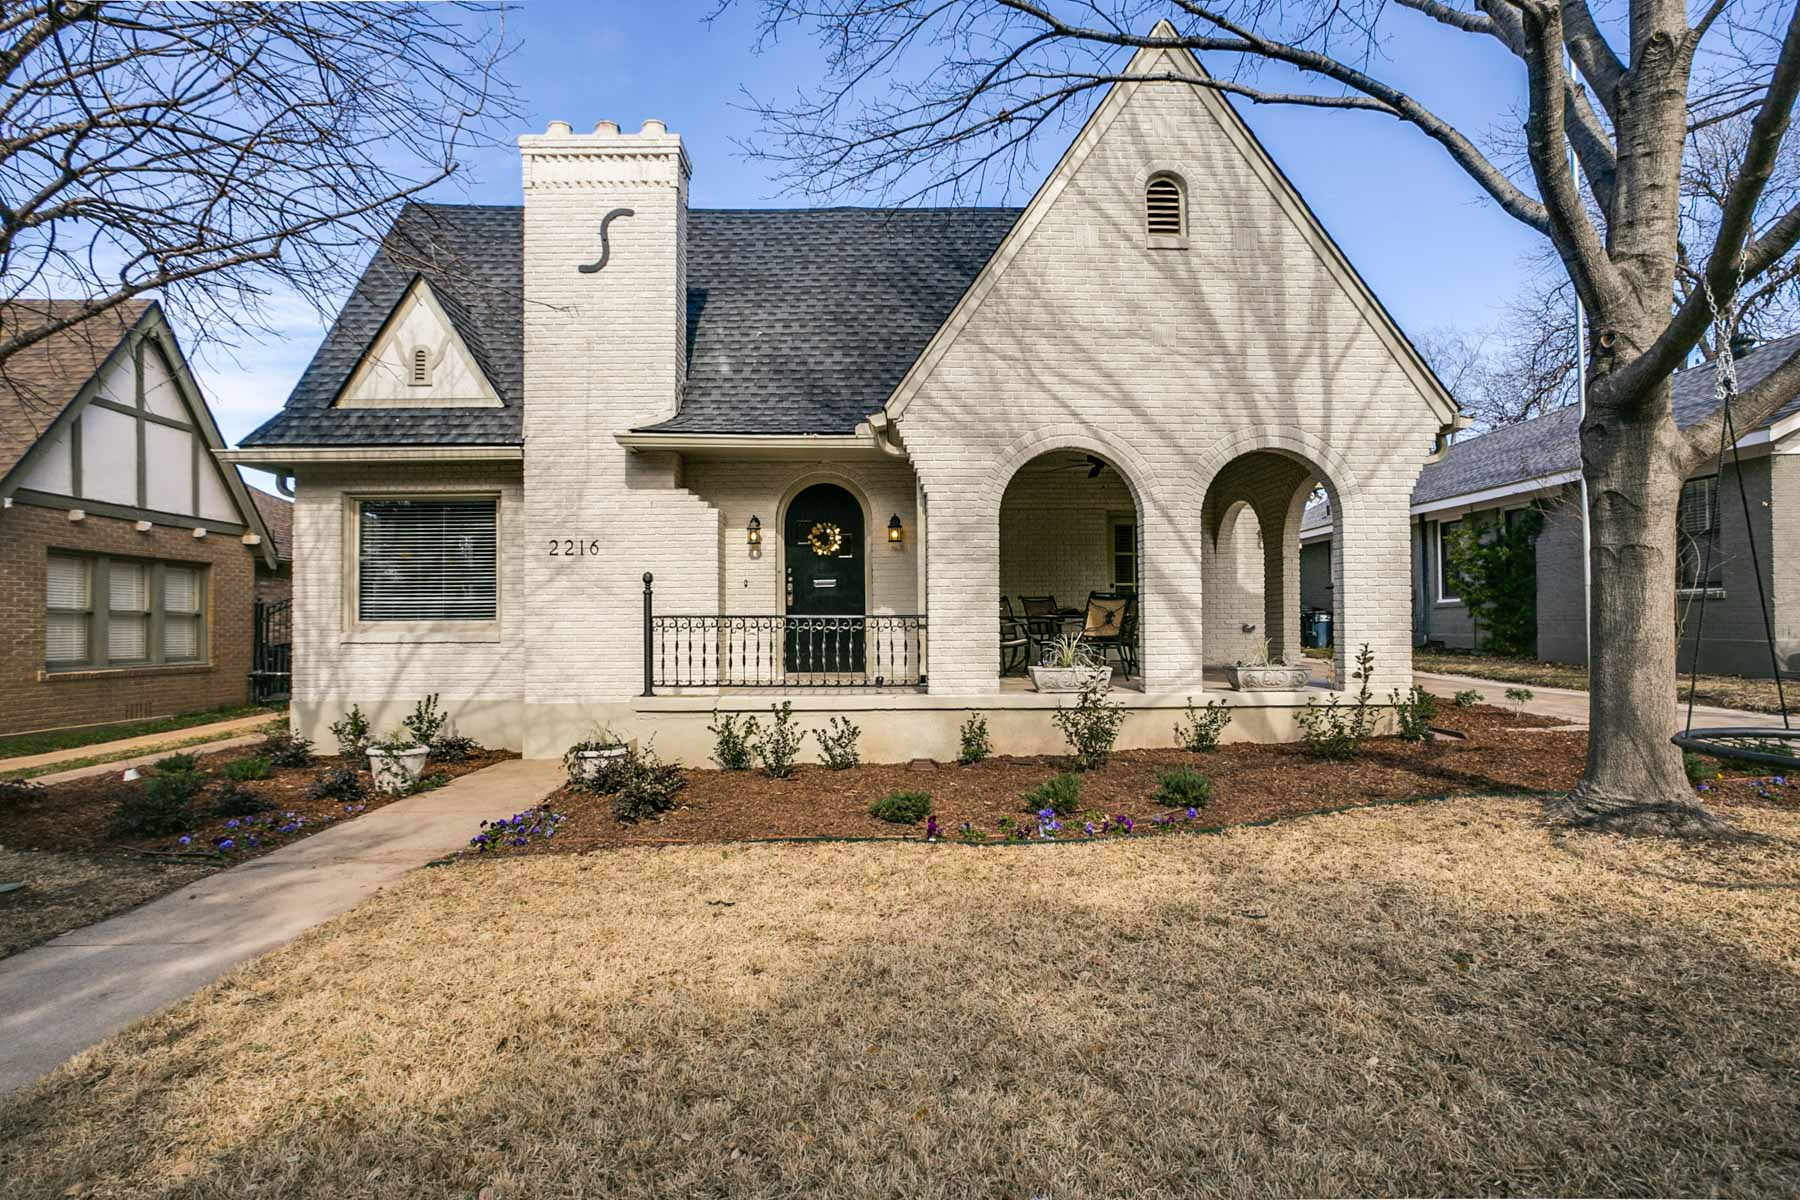 Maison unifamiliale pour l Vente à 2216 Wilshire Blvd, Fort Worth Fort Worth, Texas, 76110 États-Unis